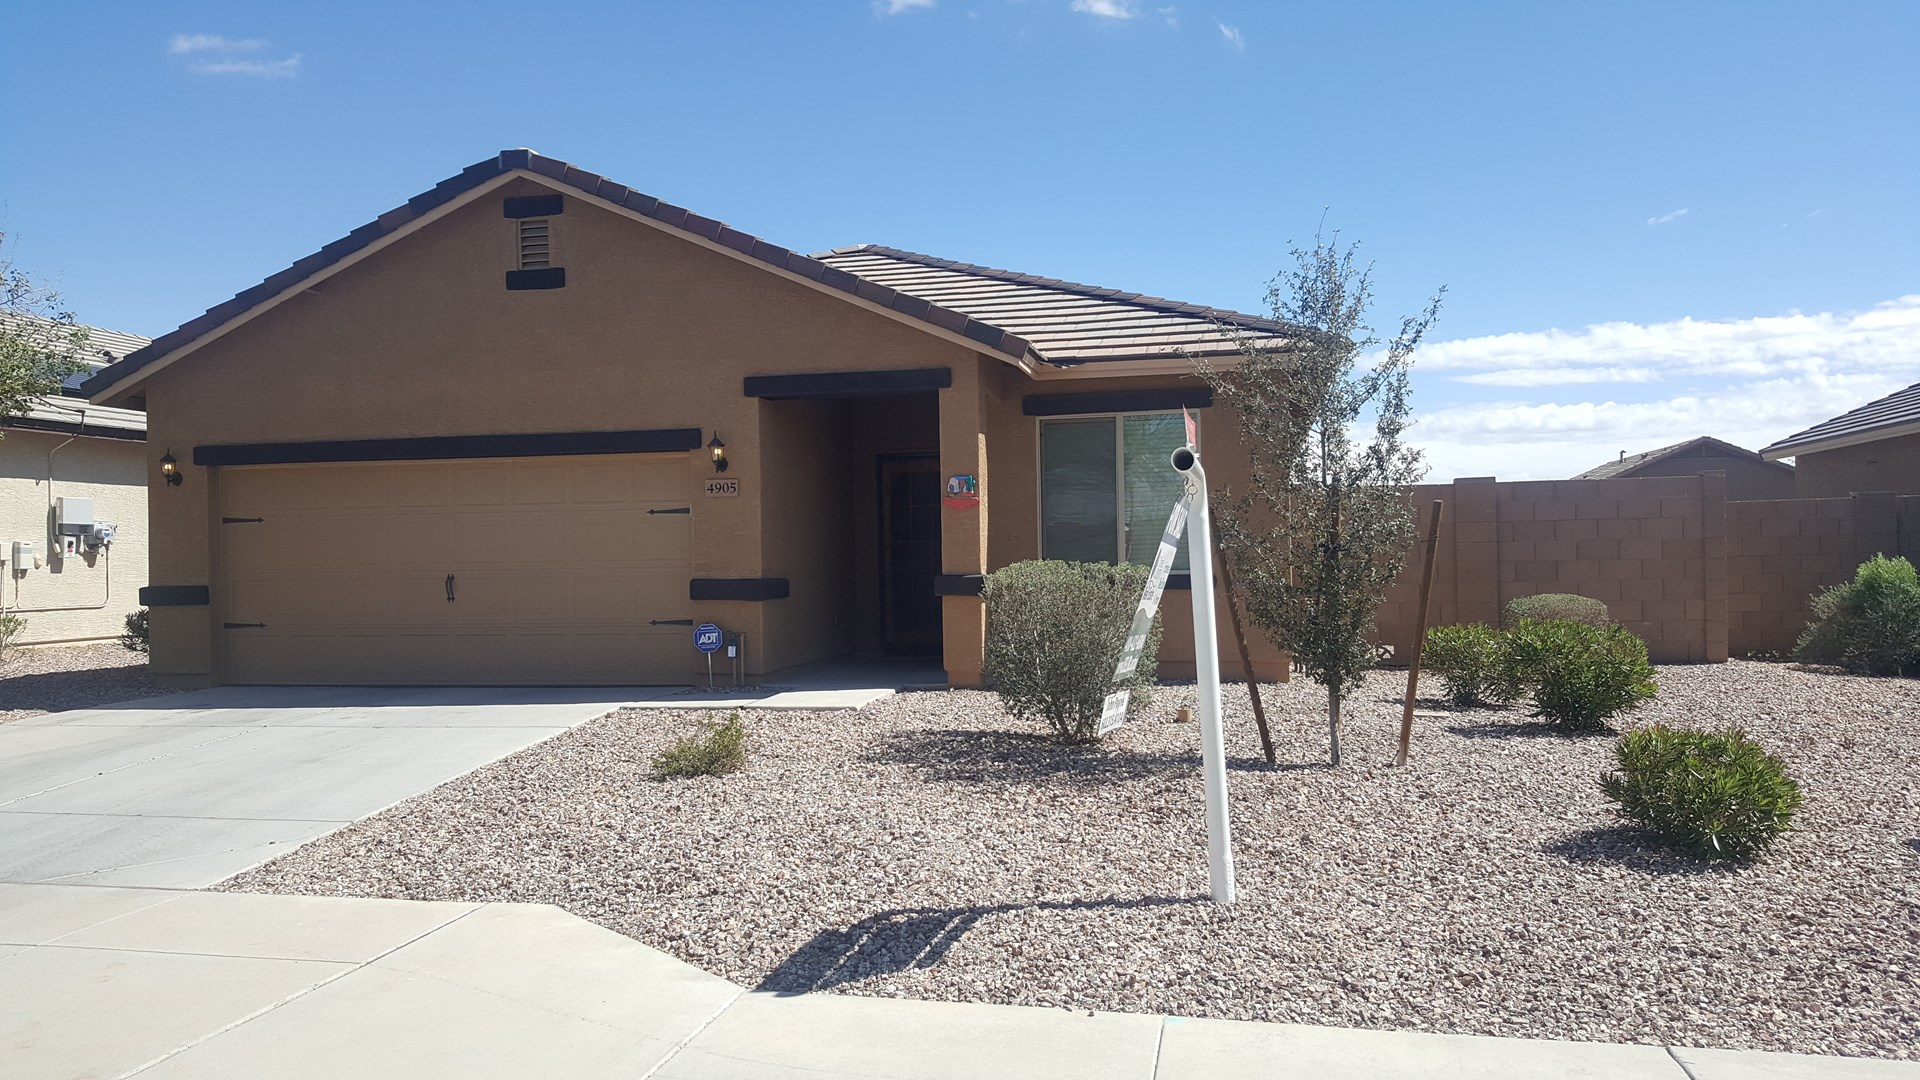 3 BED HOME WITH SOLAR FOR SALE IN BUCKEYE, ARIZONA